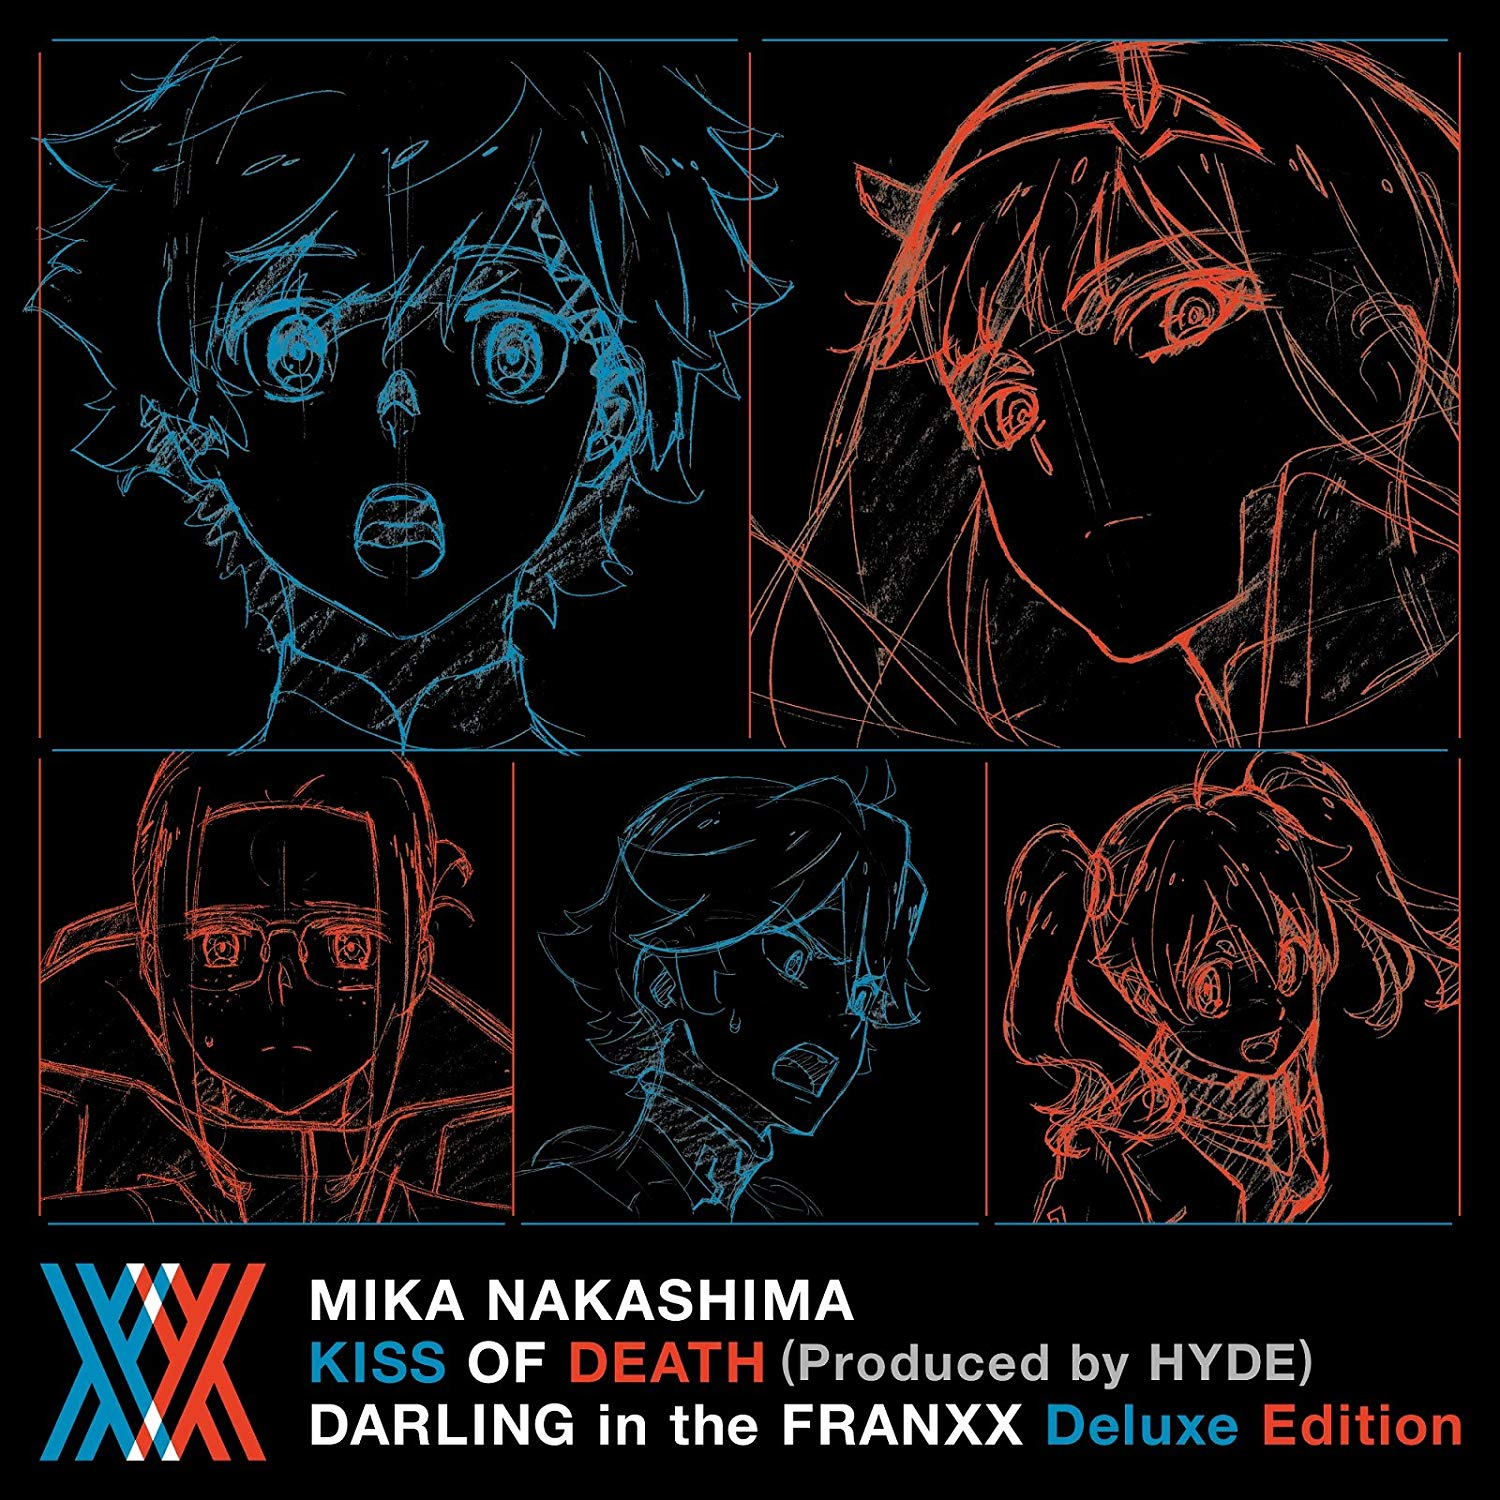 KISS OF DEATH DARLING in the FRANXX Deluxe Edition